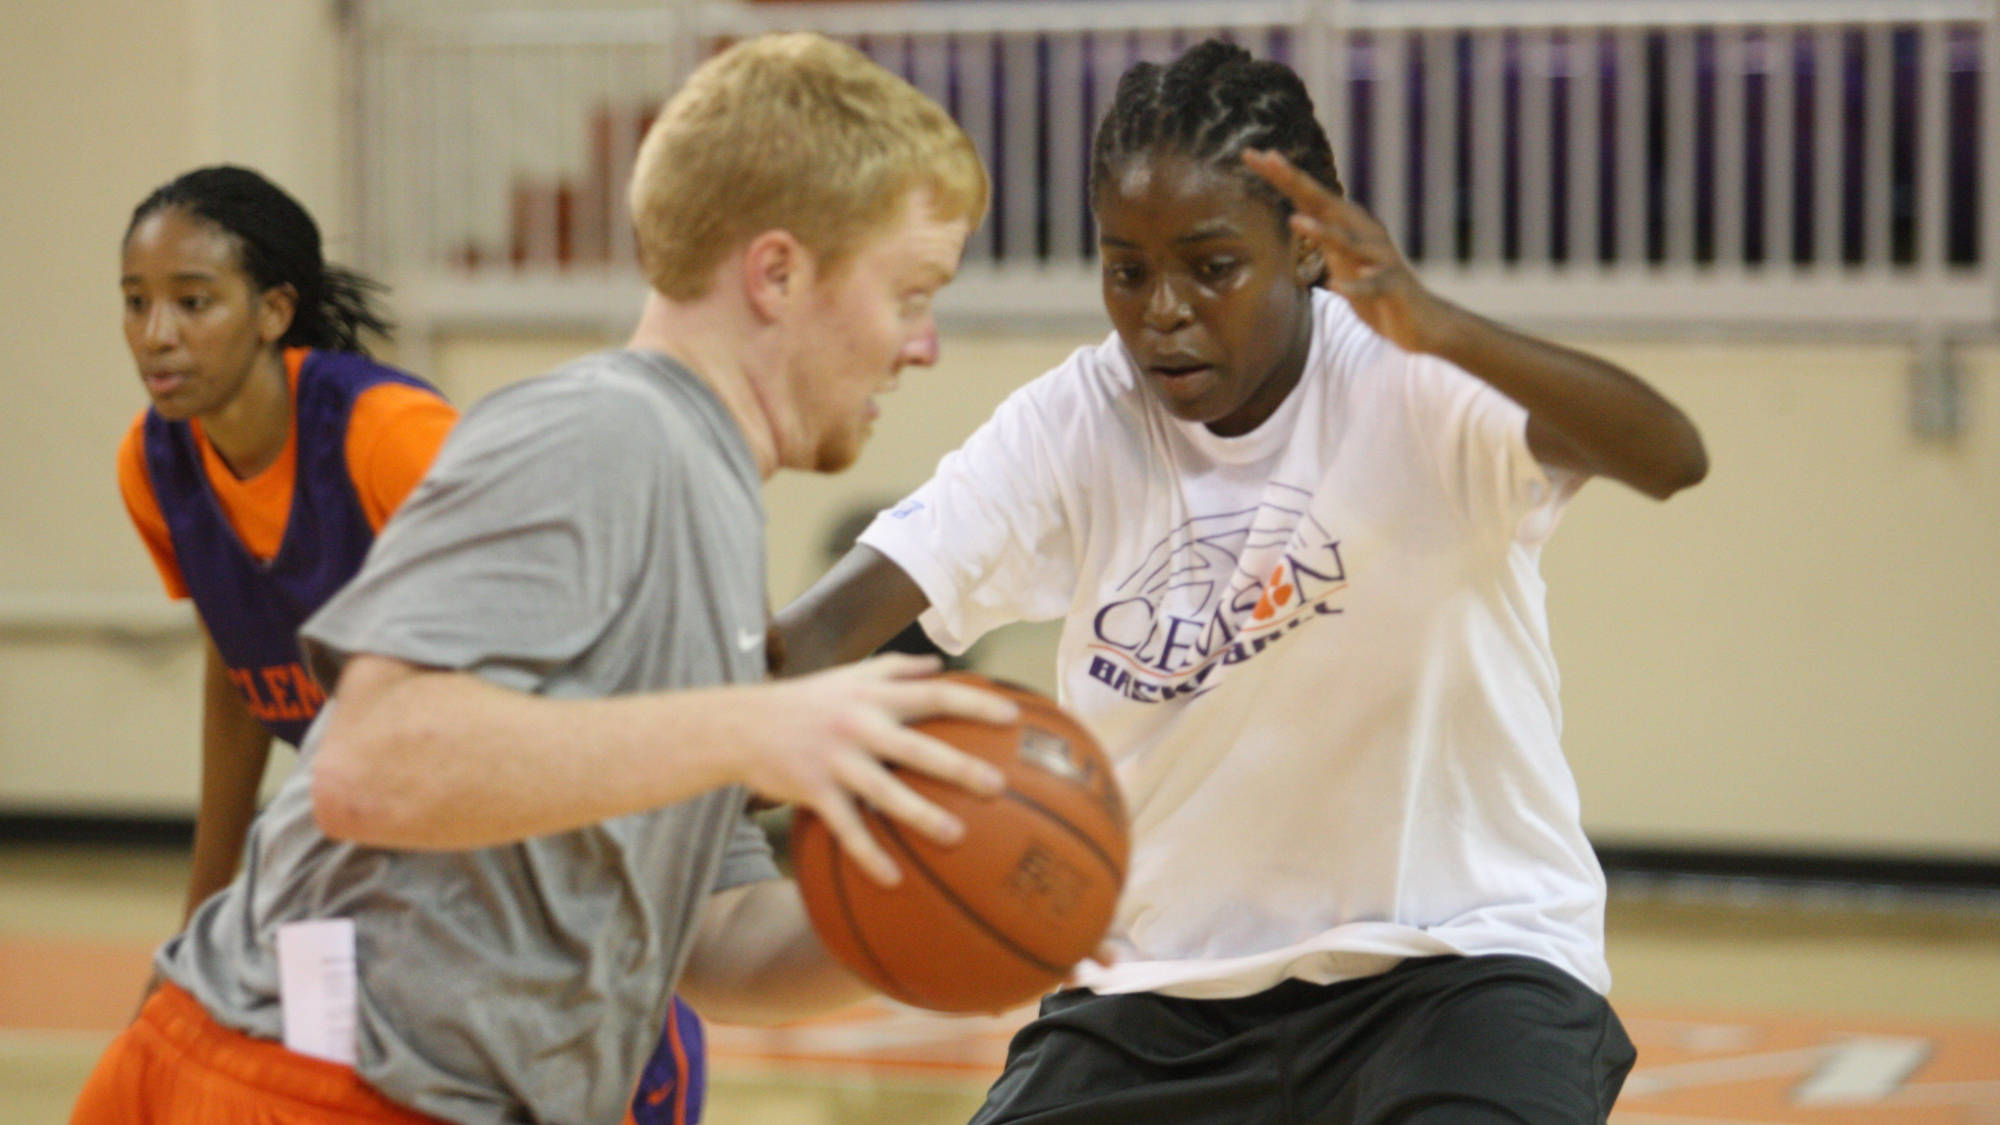 Women's Basketball Looking for Male Practice Players